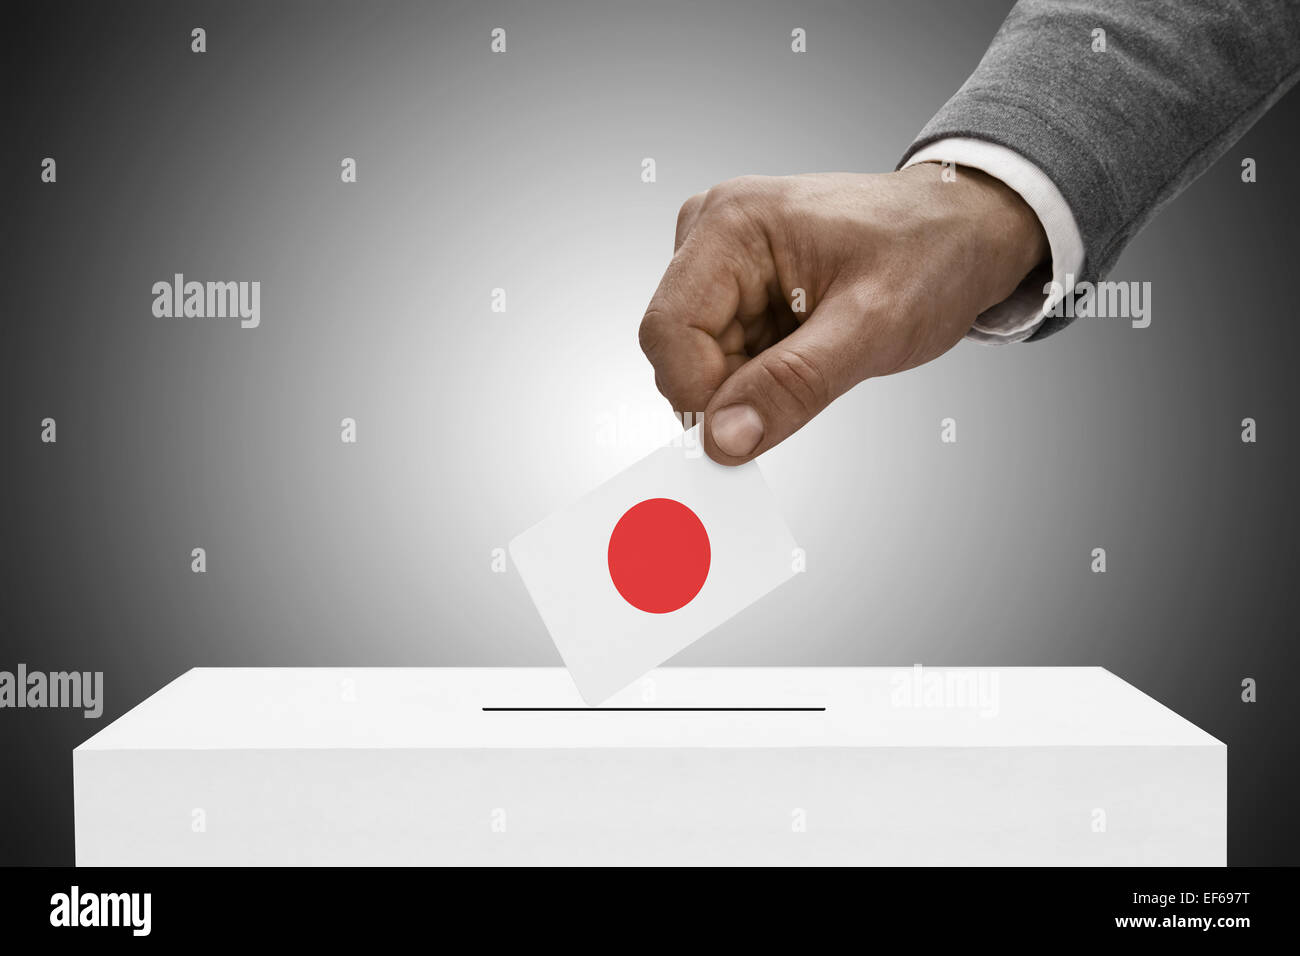 Ballot box painted into national flag colors - Japan Stock Photo